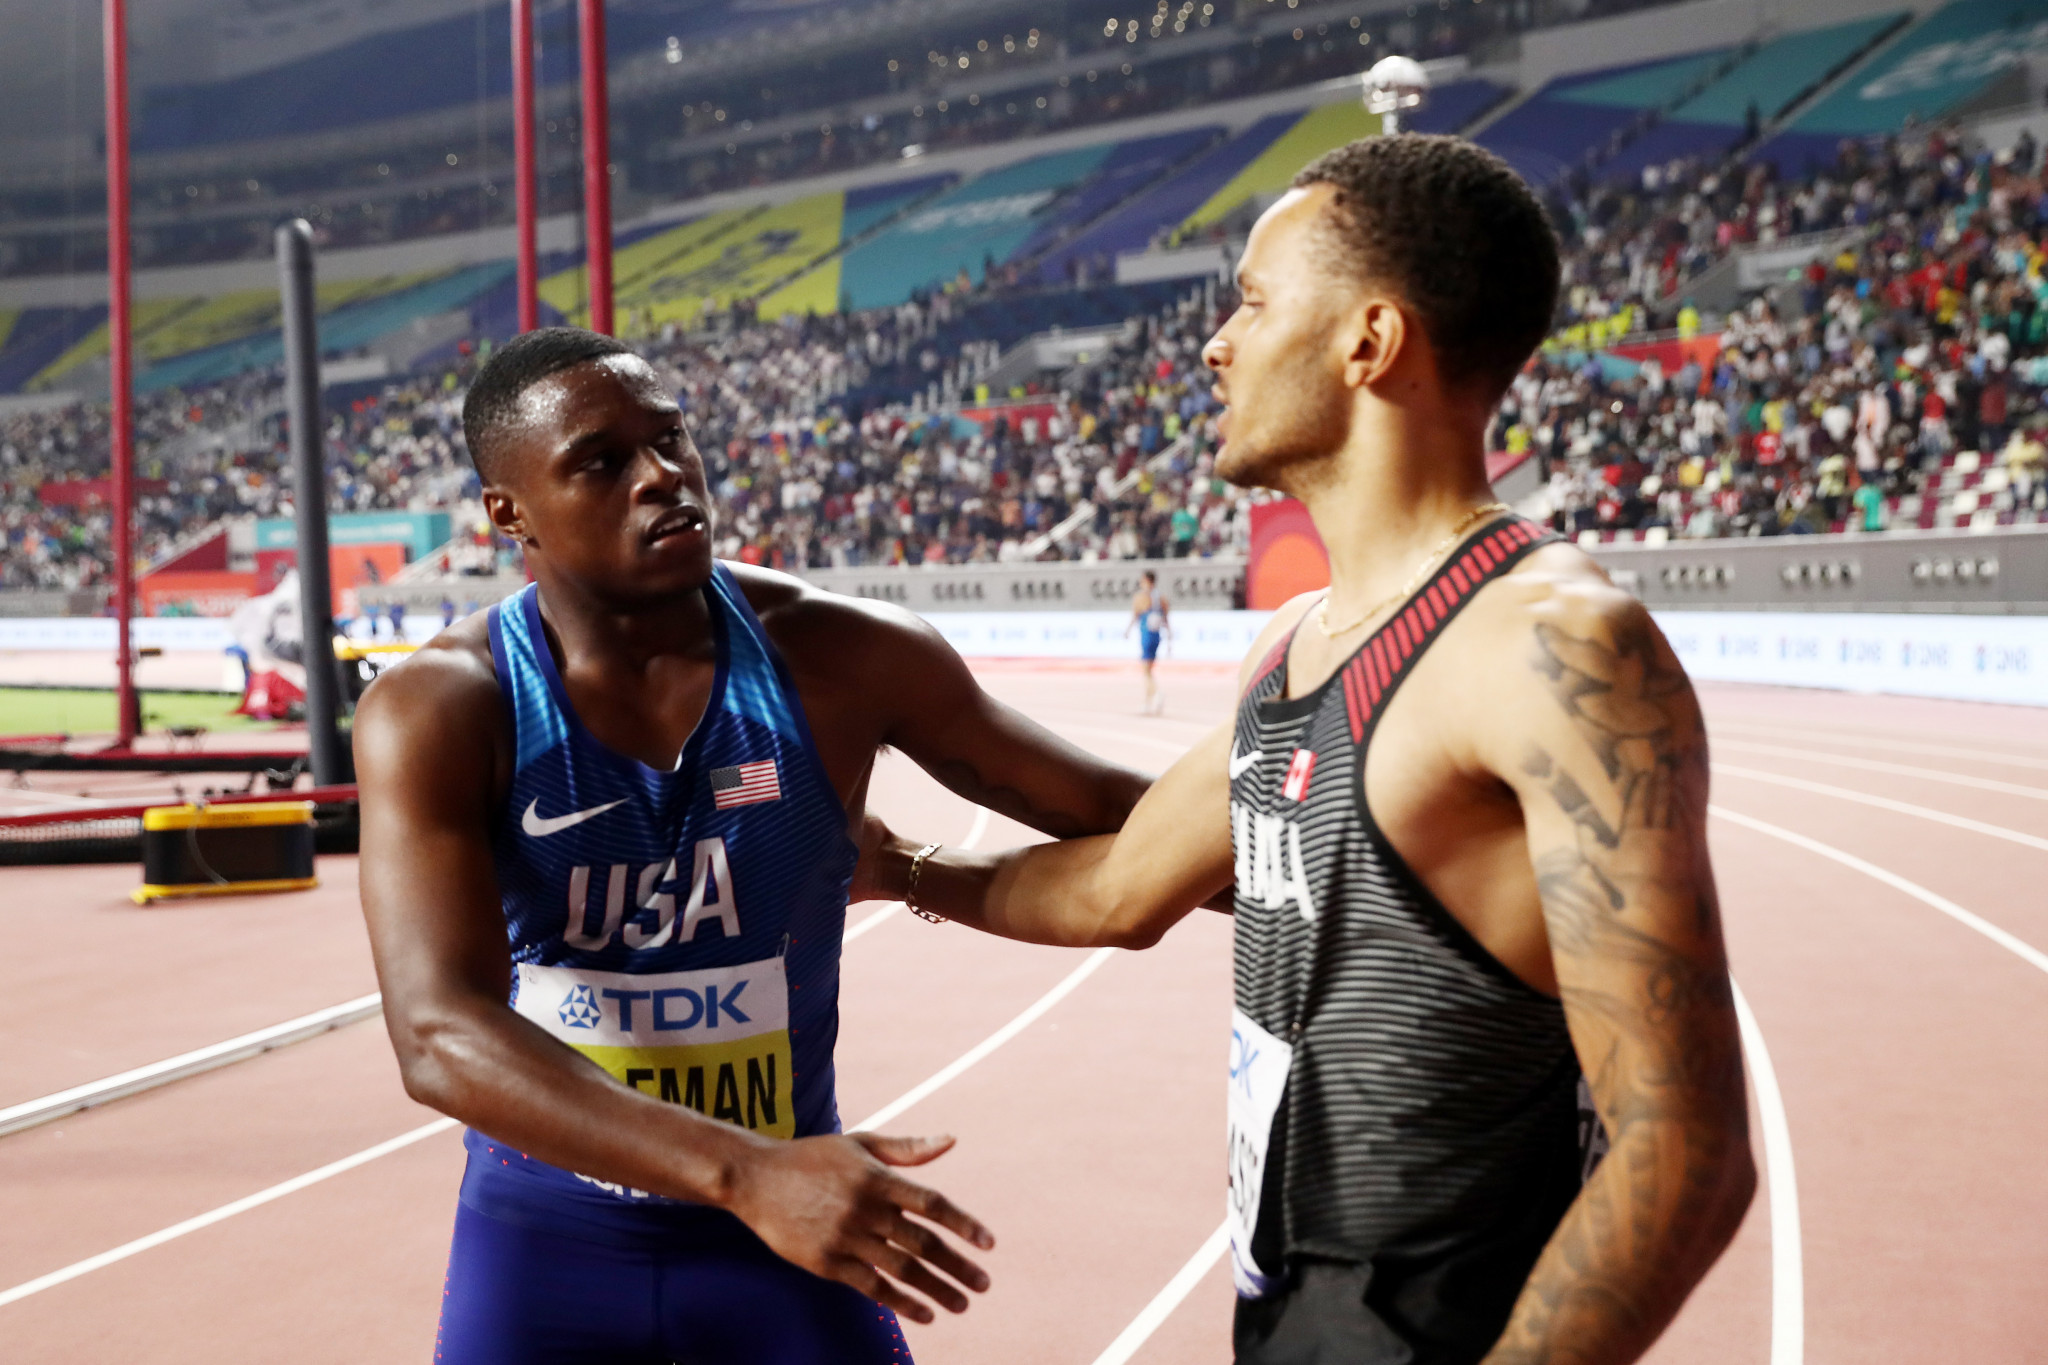 De Grasse disappointed he will not race banned Coleman at Tokyo 2020